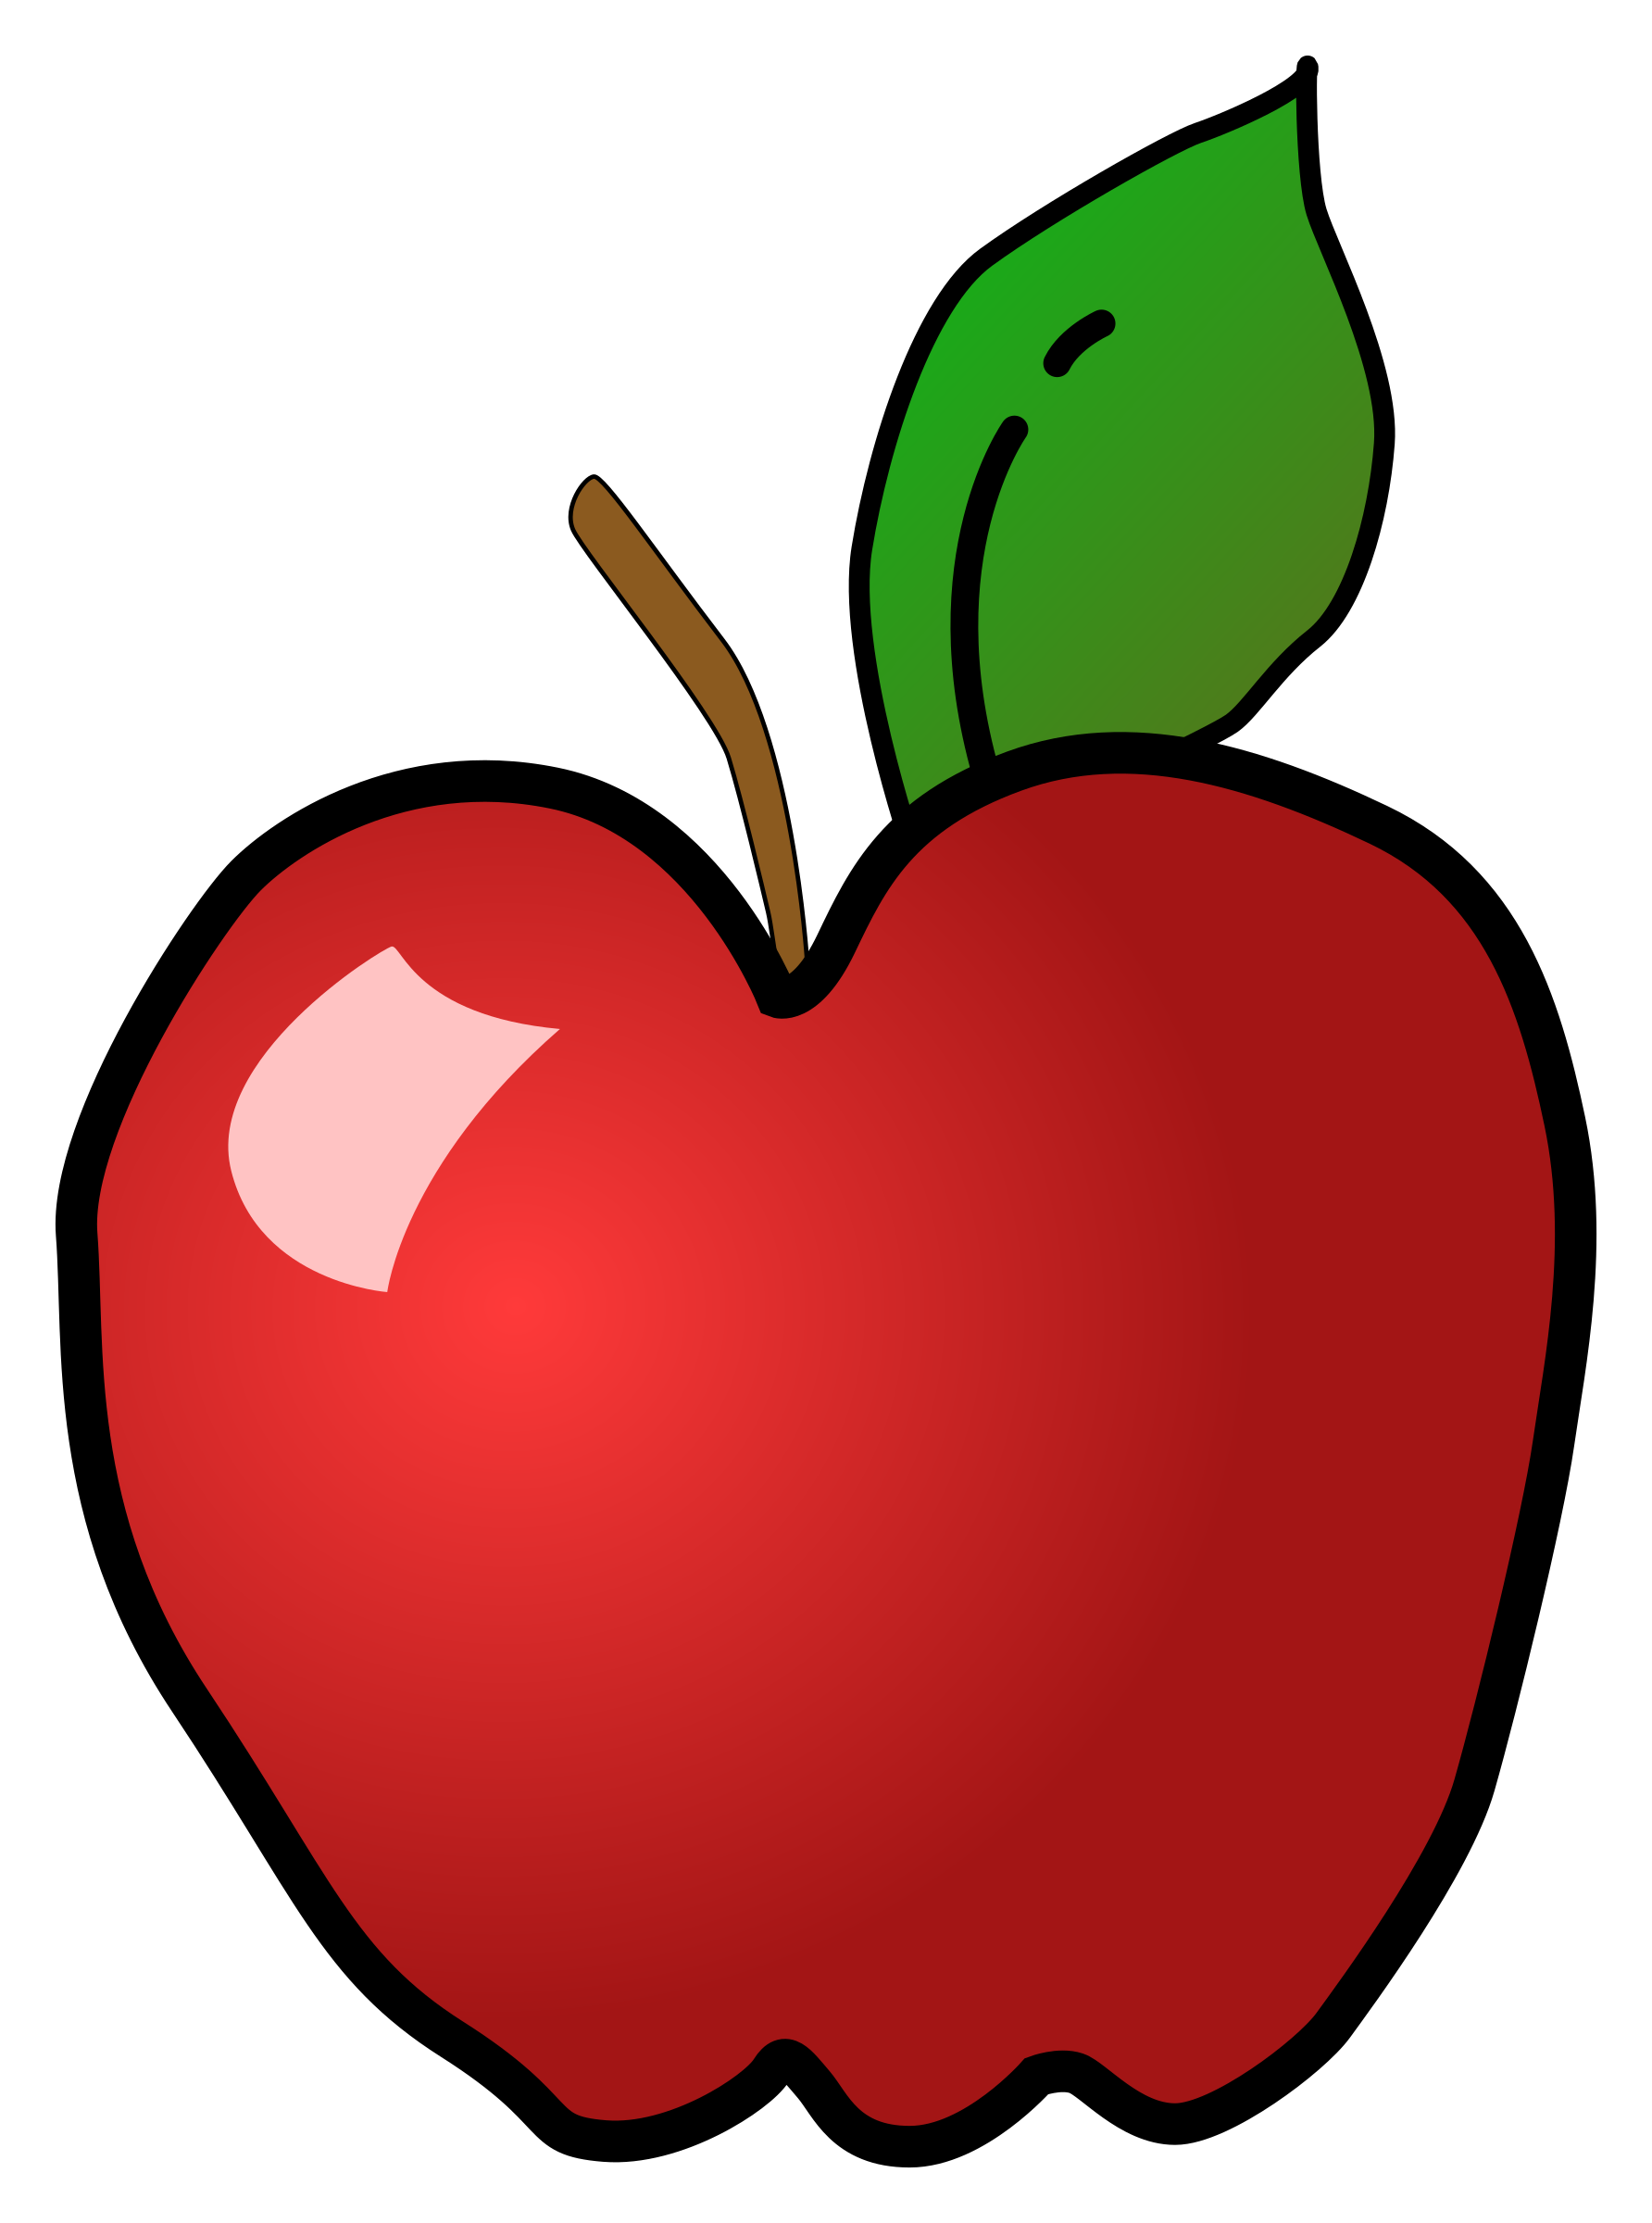 Apple people clipart clipart transparent Polished Apple Icons PNG - Free PNG and Icons Downloads clipart transparent